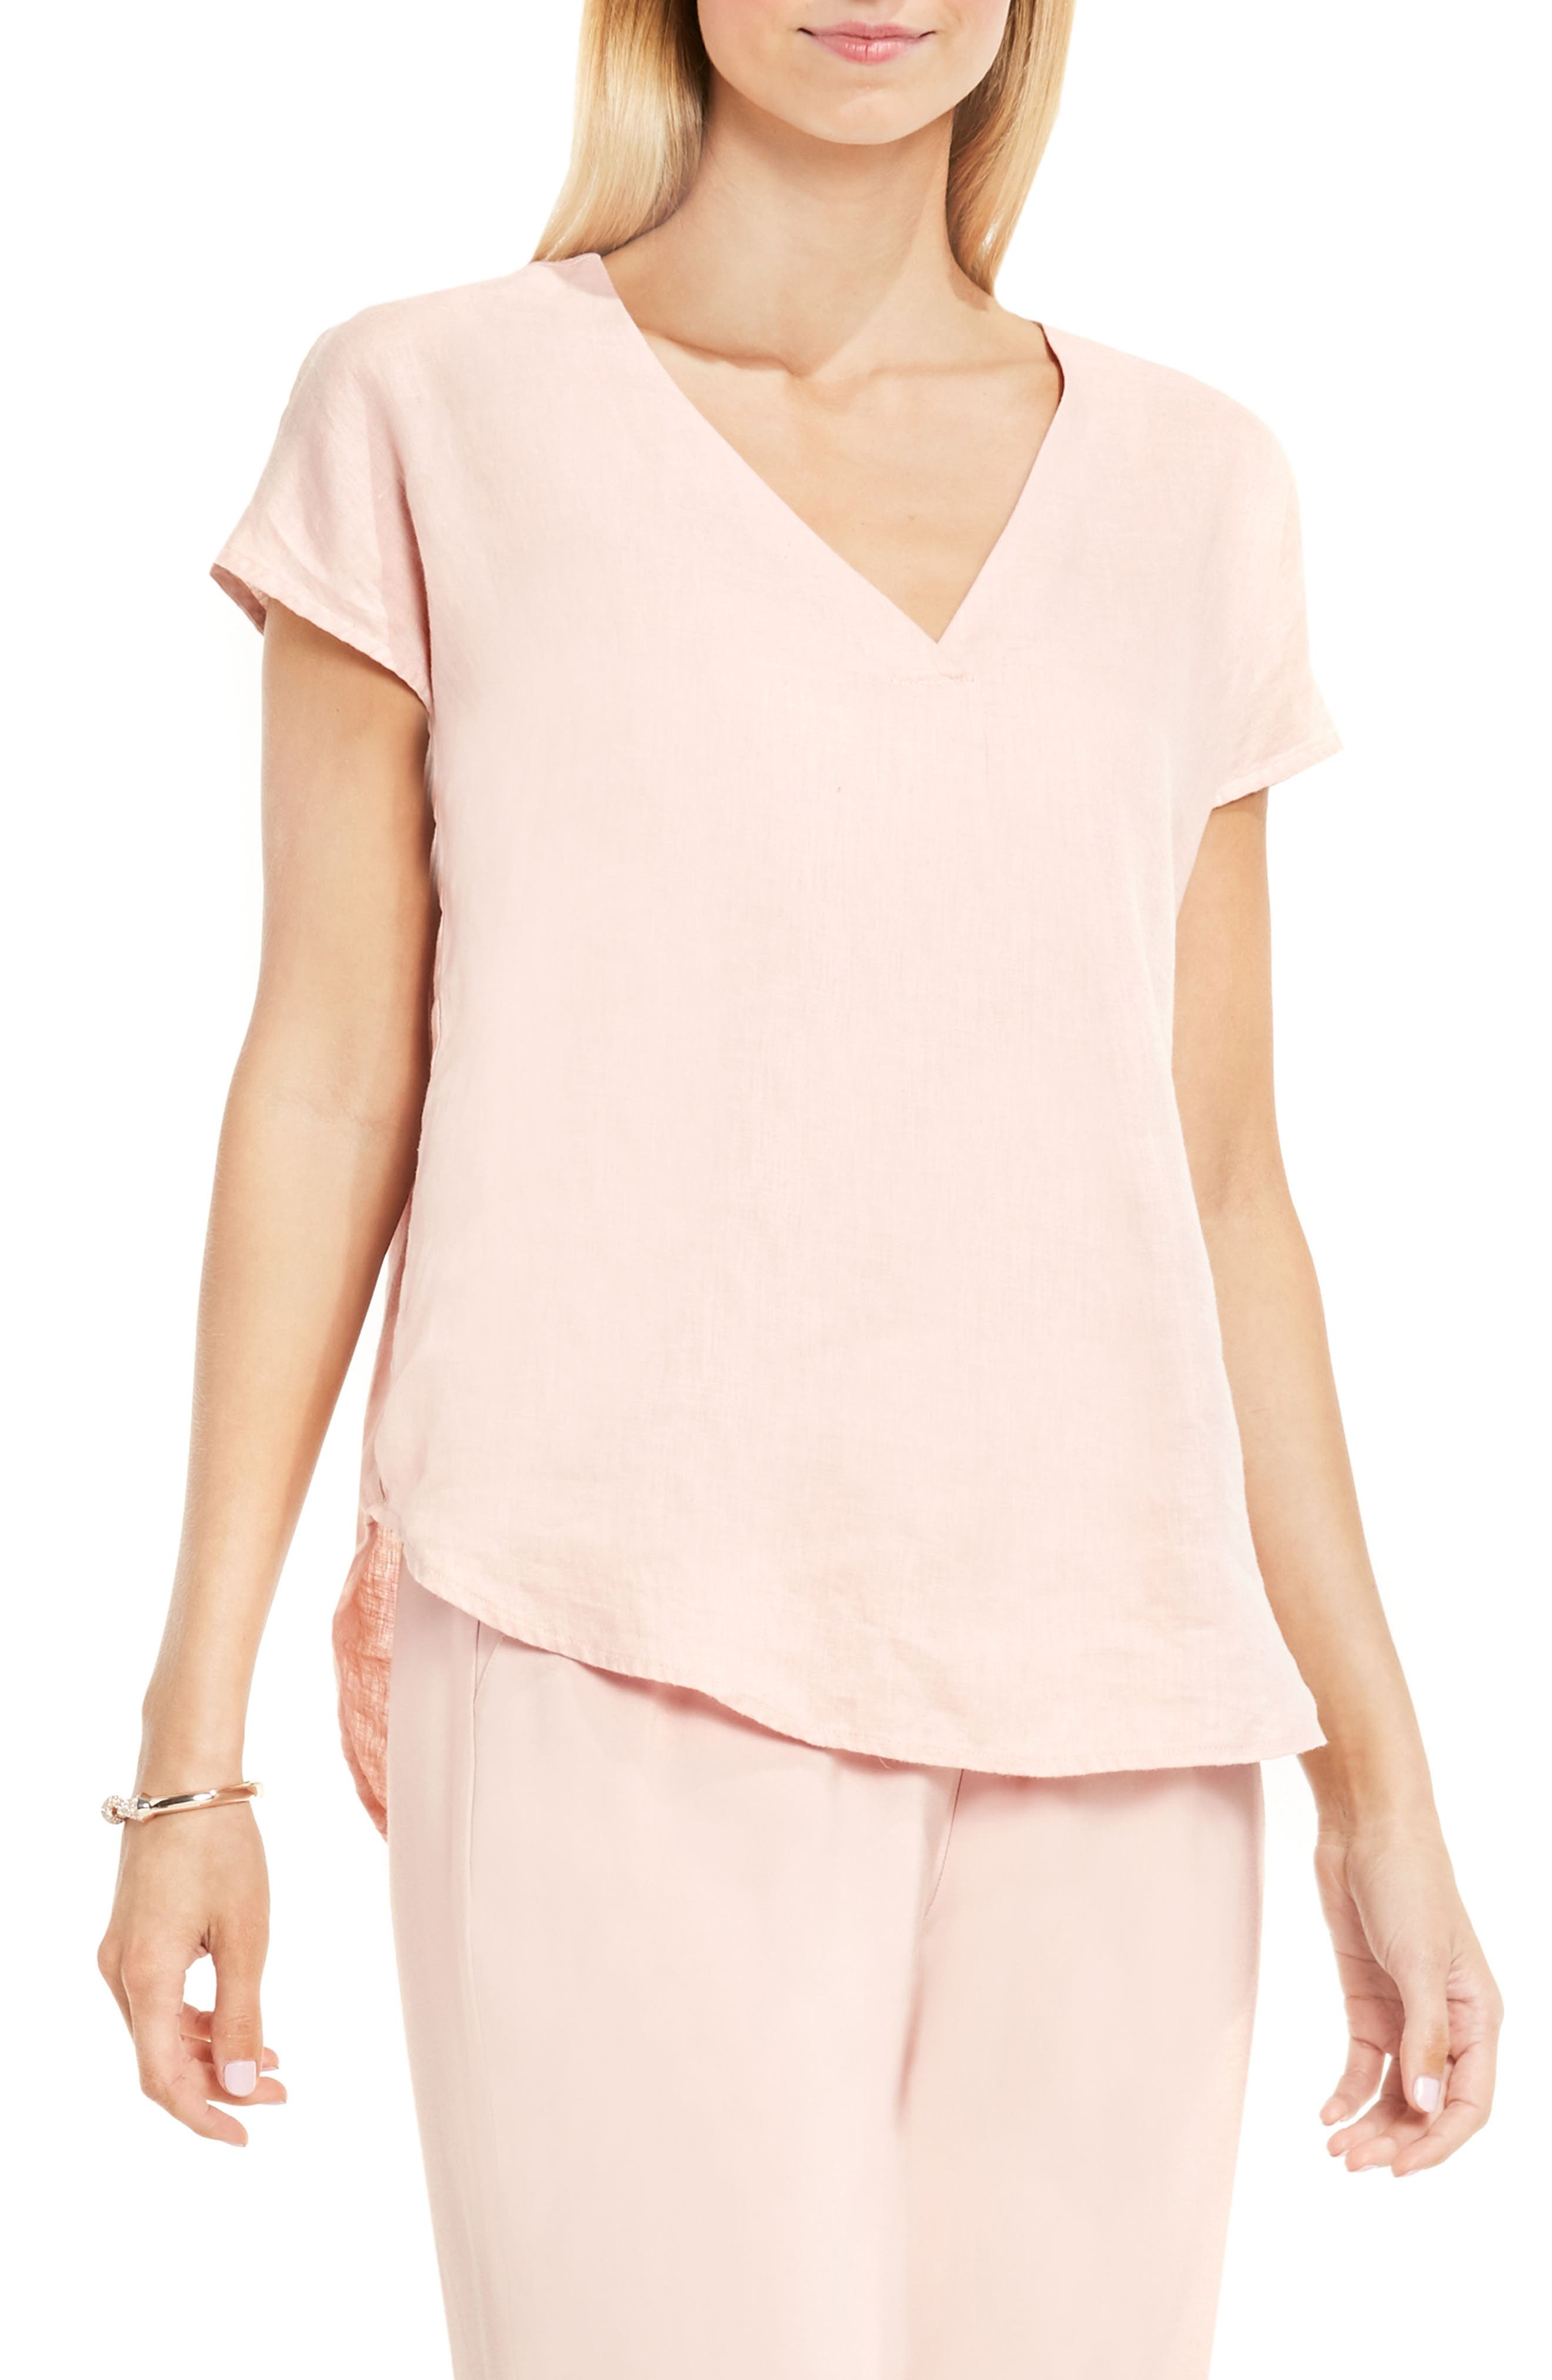 TWO BY VINCE CAMUTO Linen V-Neck Blouse in Blush Pink